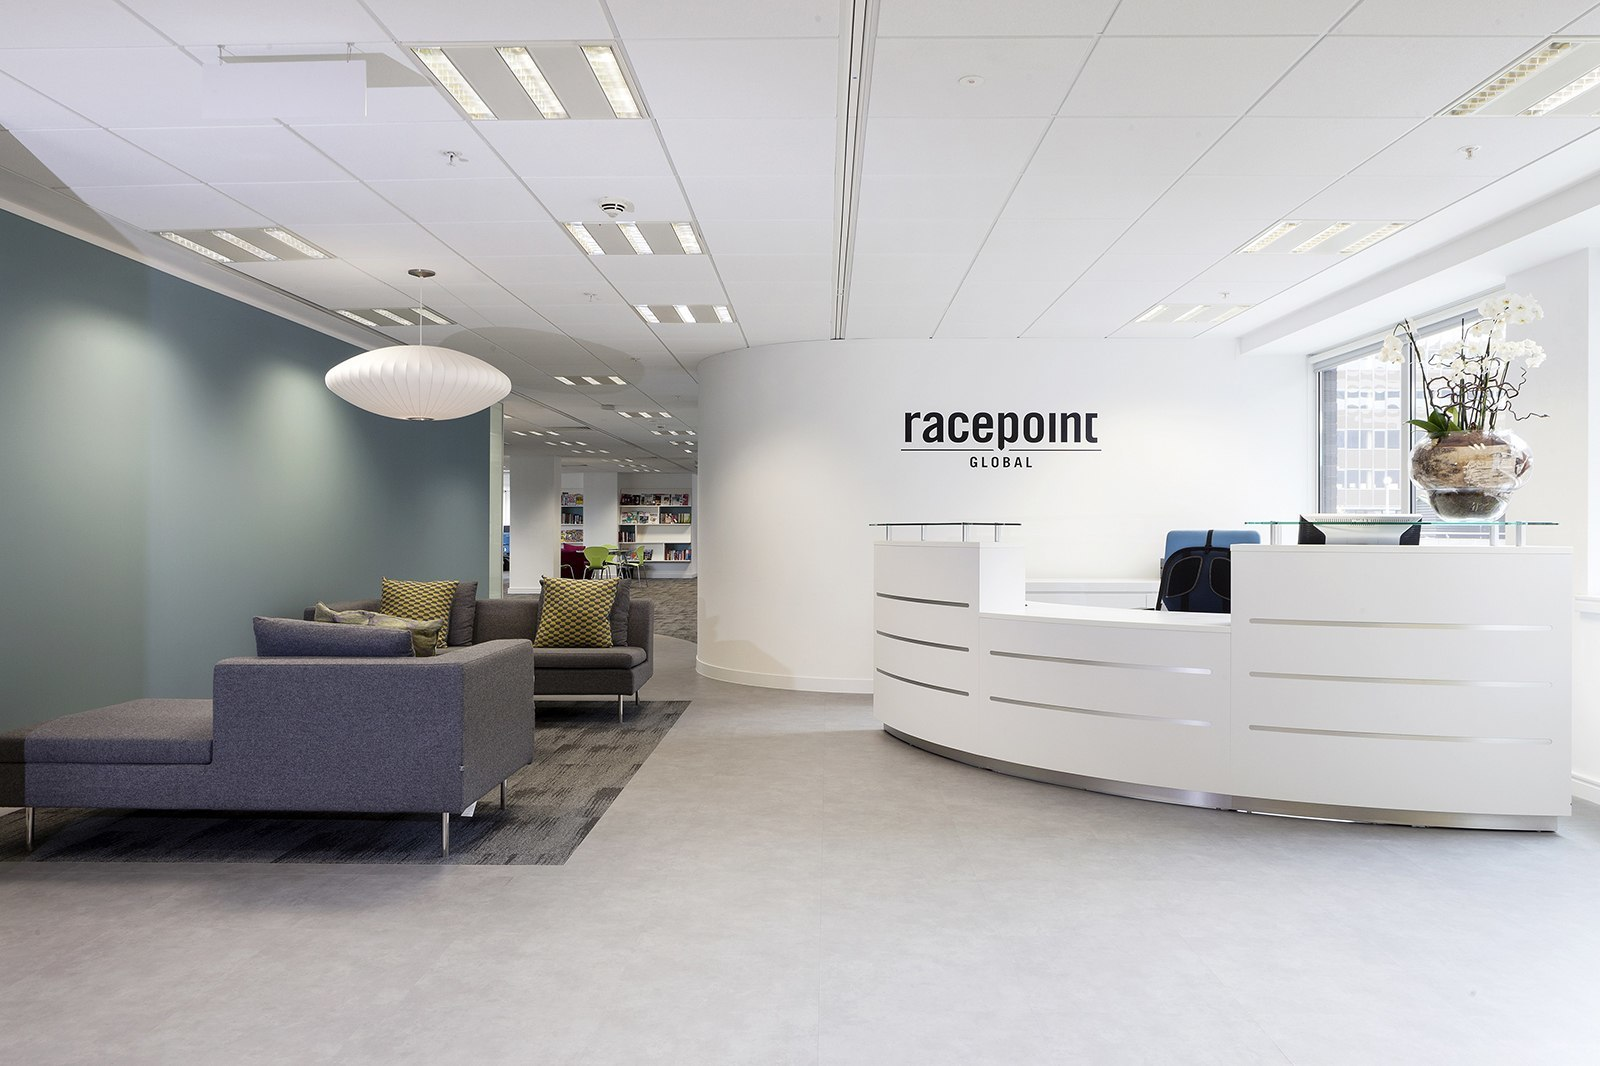 racepoint-global-office-1